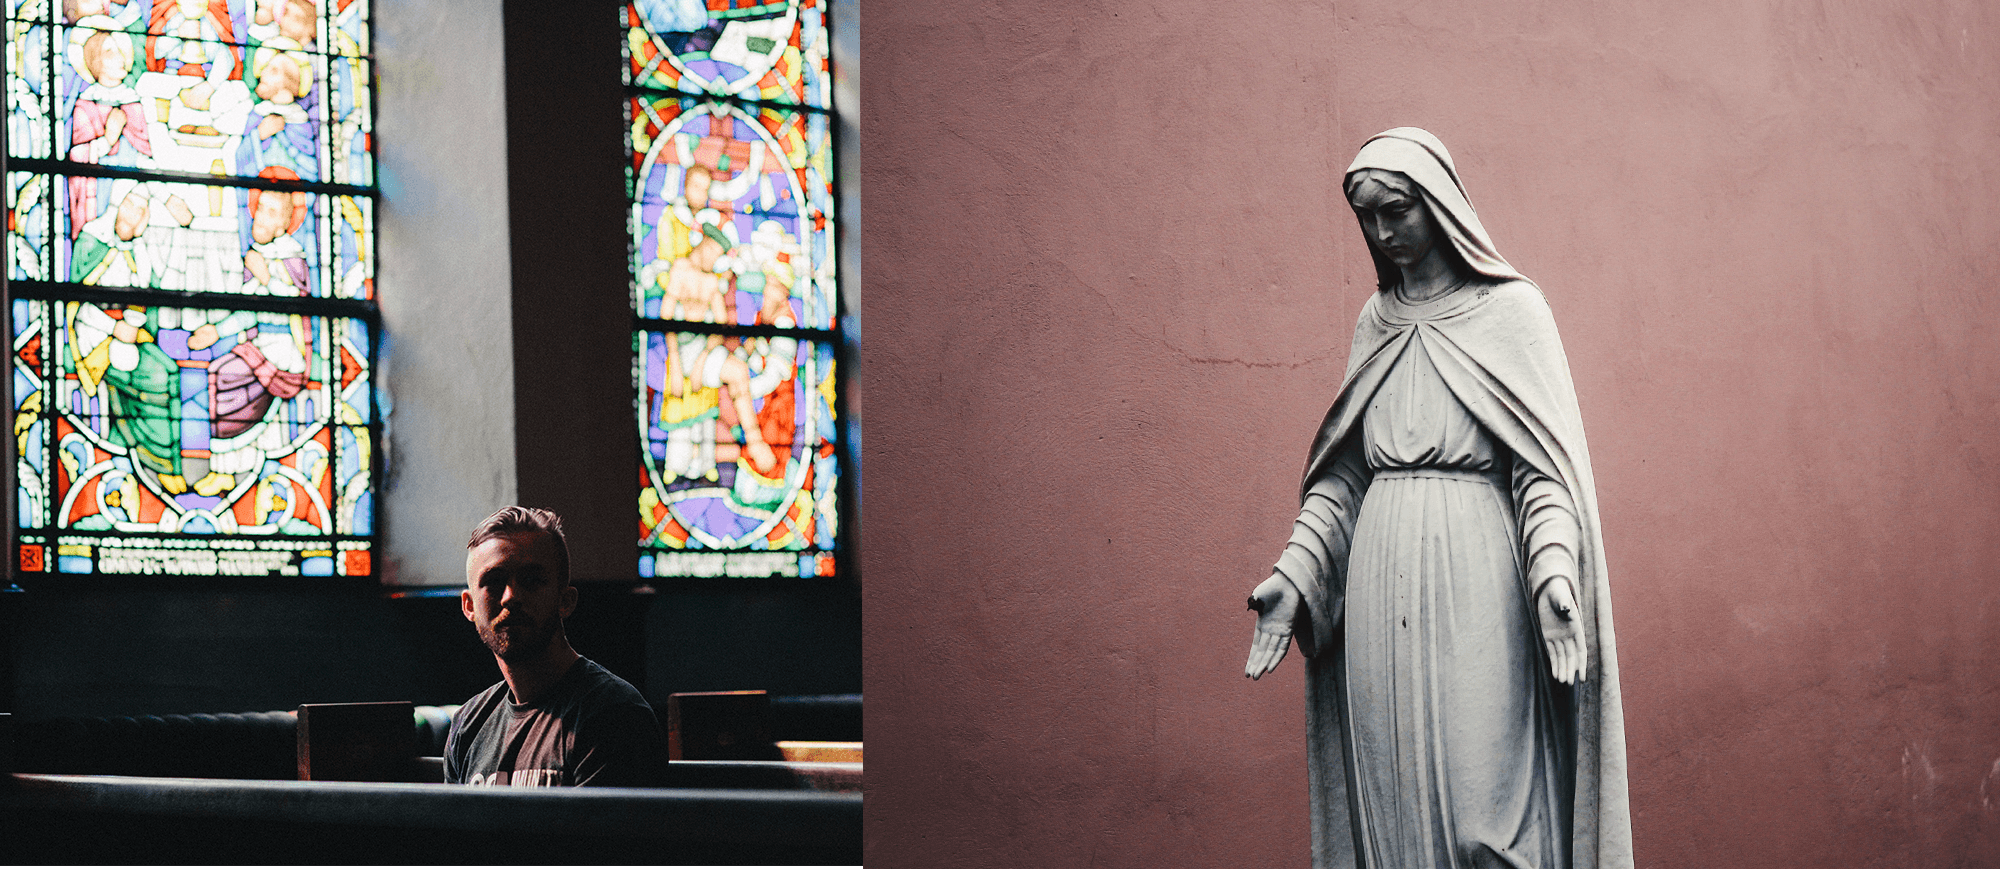 Man praying next to a statue of Mary